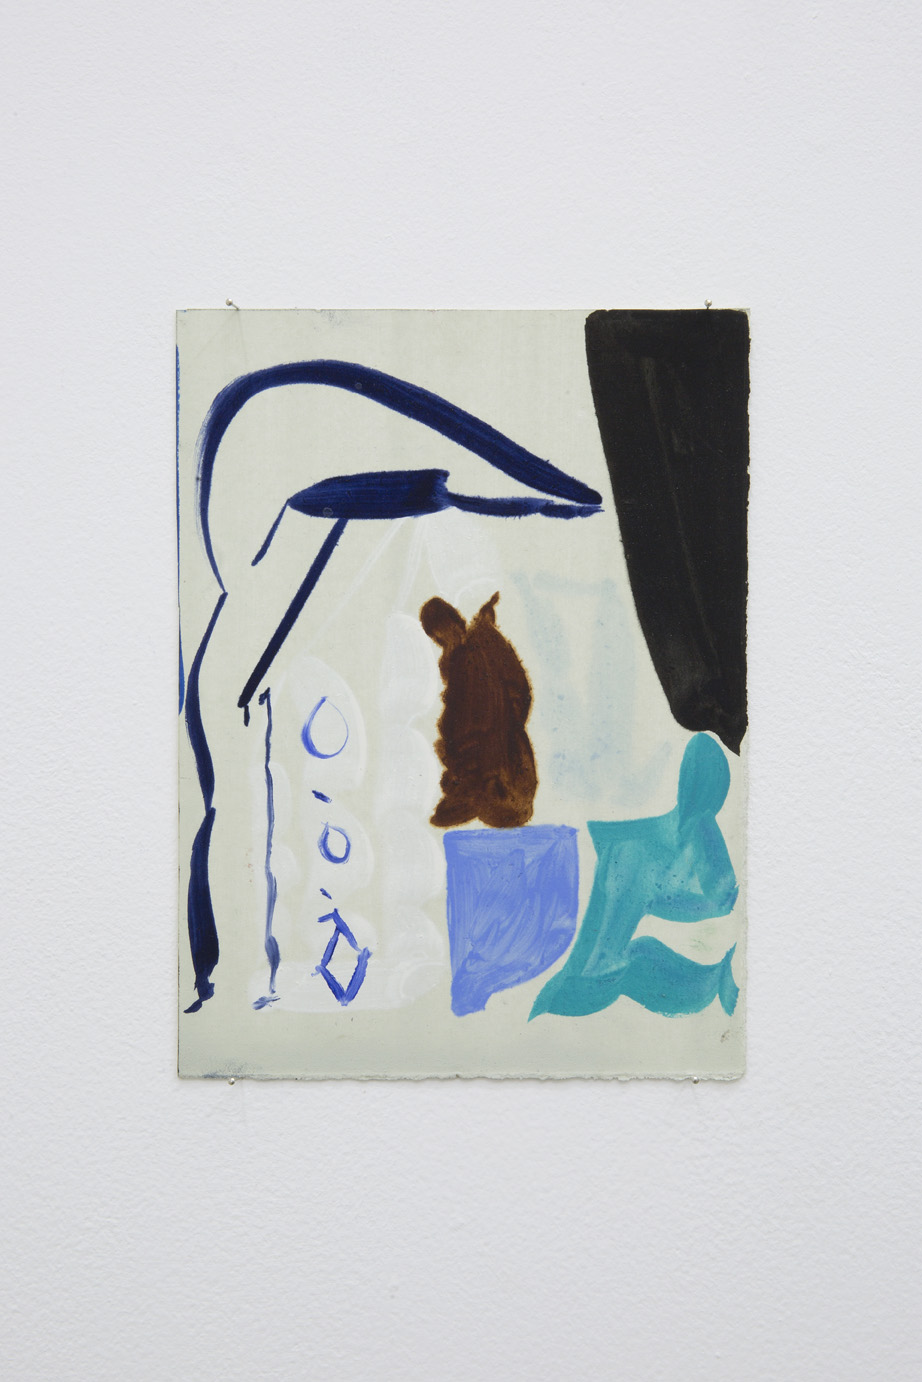 Patricia Treib, Delft Icon Variation, 2015. Oil on paper, 7 1/2 x 5 1/2 inches (18 x 13 cm)